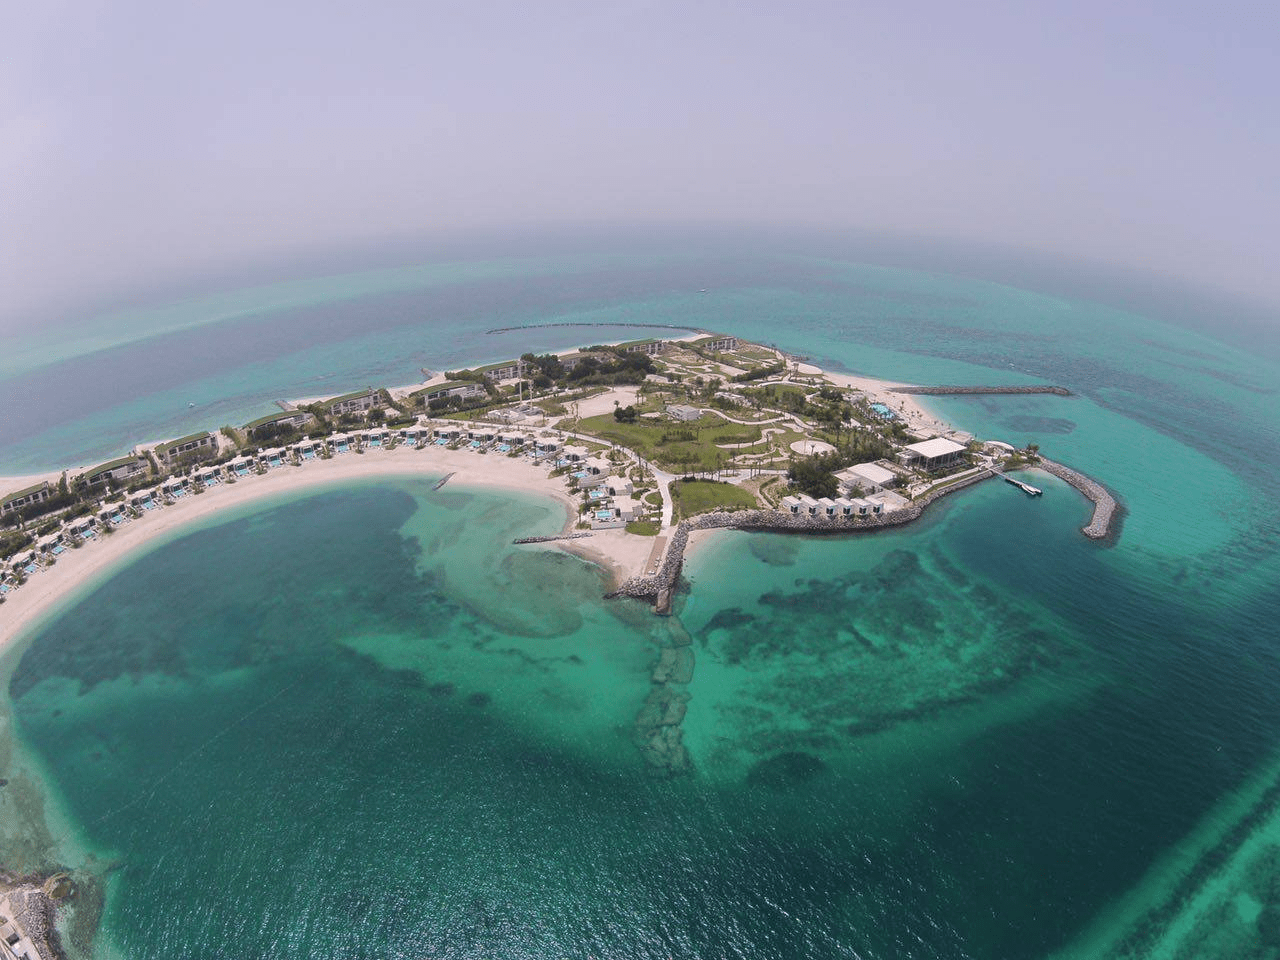 At Zaya Nurai Island in Dubai, guests will find accommodations built directly onto the beachfront of the island's southern coast. The resort includes villas and beach houses that come with a private pool, as well as an estate that comes with its own private beach. Guests can enjoy fresh fish at its restaurants, or enjoy activities like paddleboarding and kayaking.